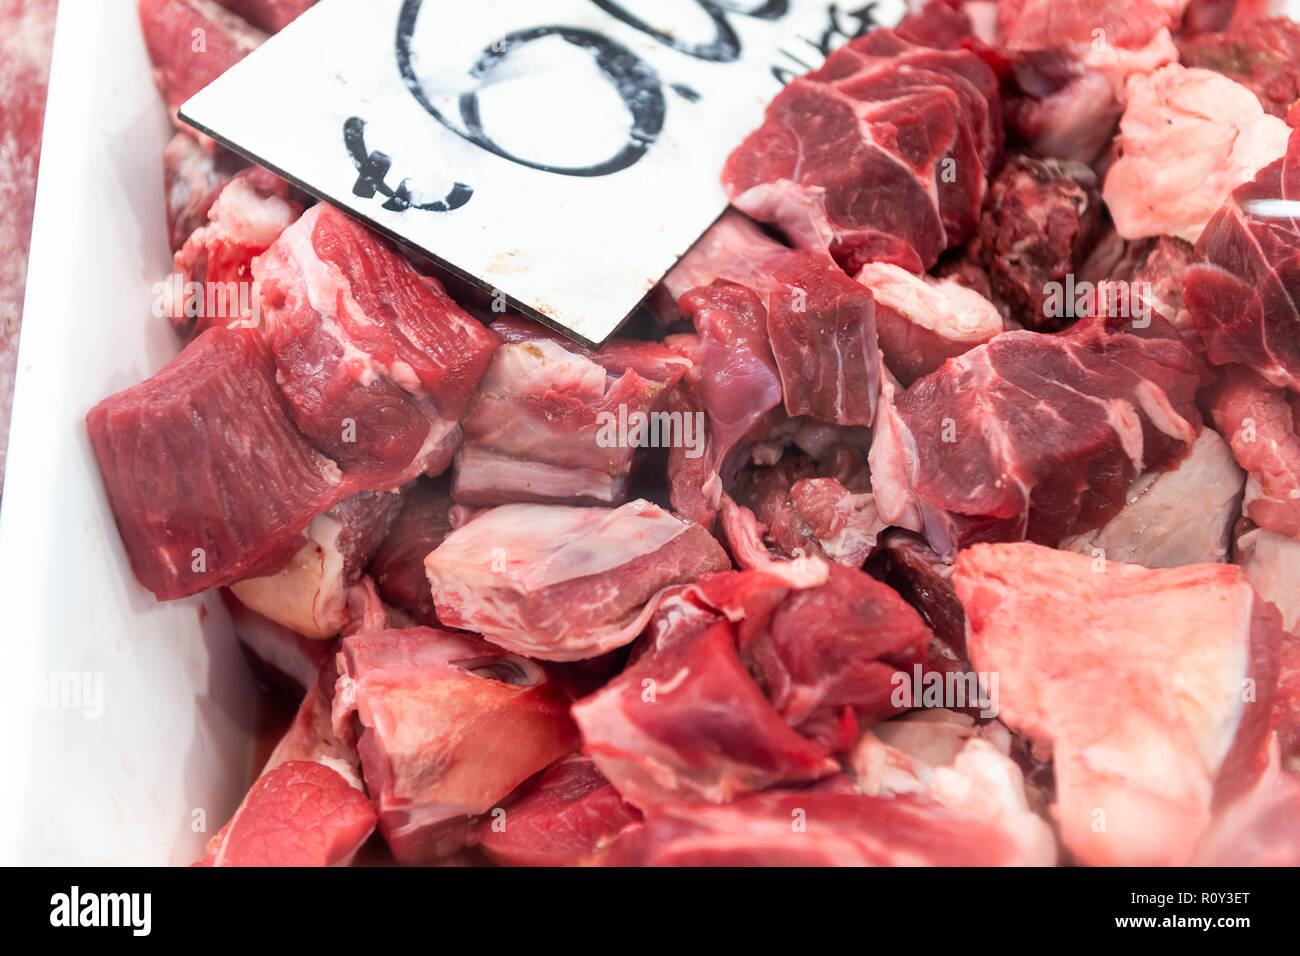 Closeup of many beef meat chunks, cut in slices on retail display store, shop in butchers shopping area in fridge, refrigerated with price tag, label - Stock Image